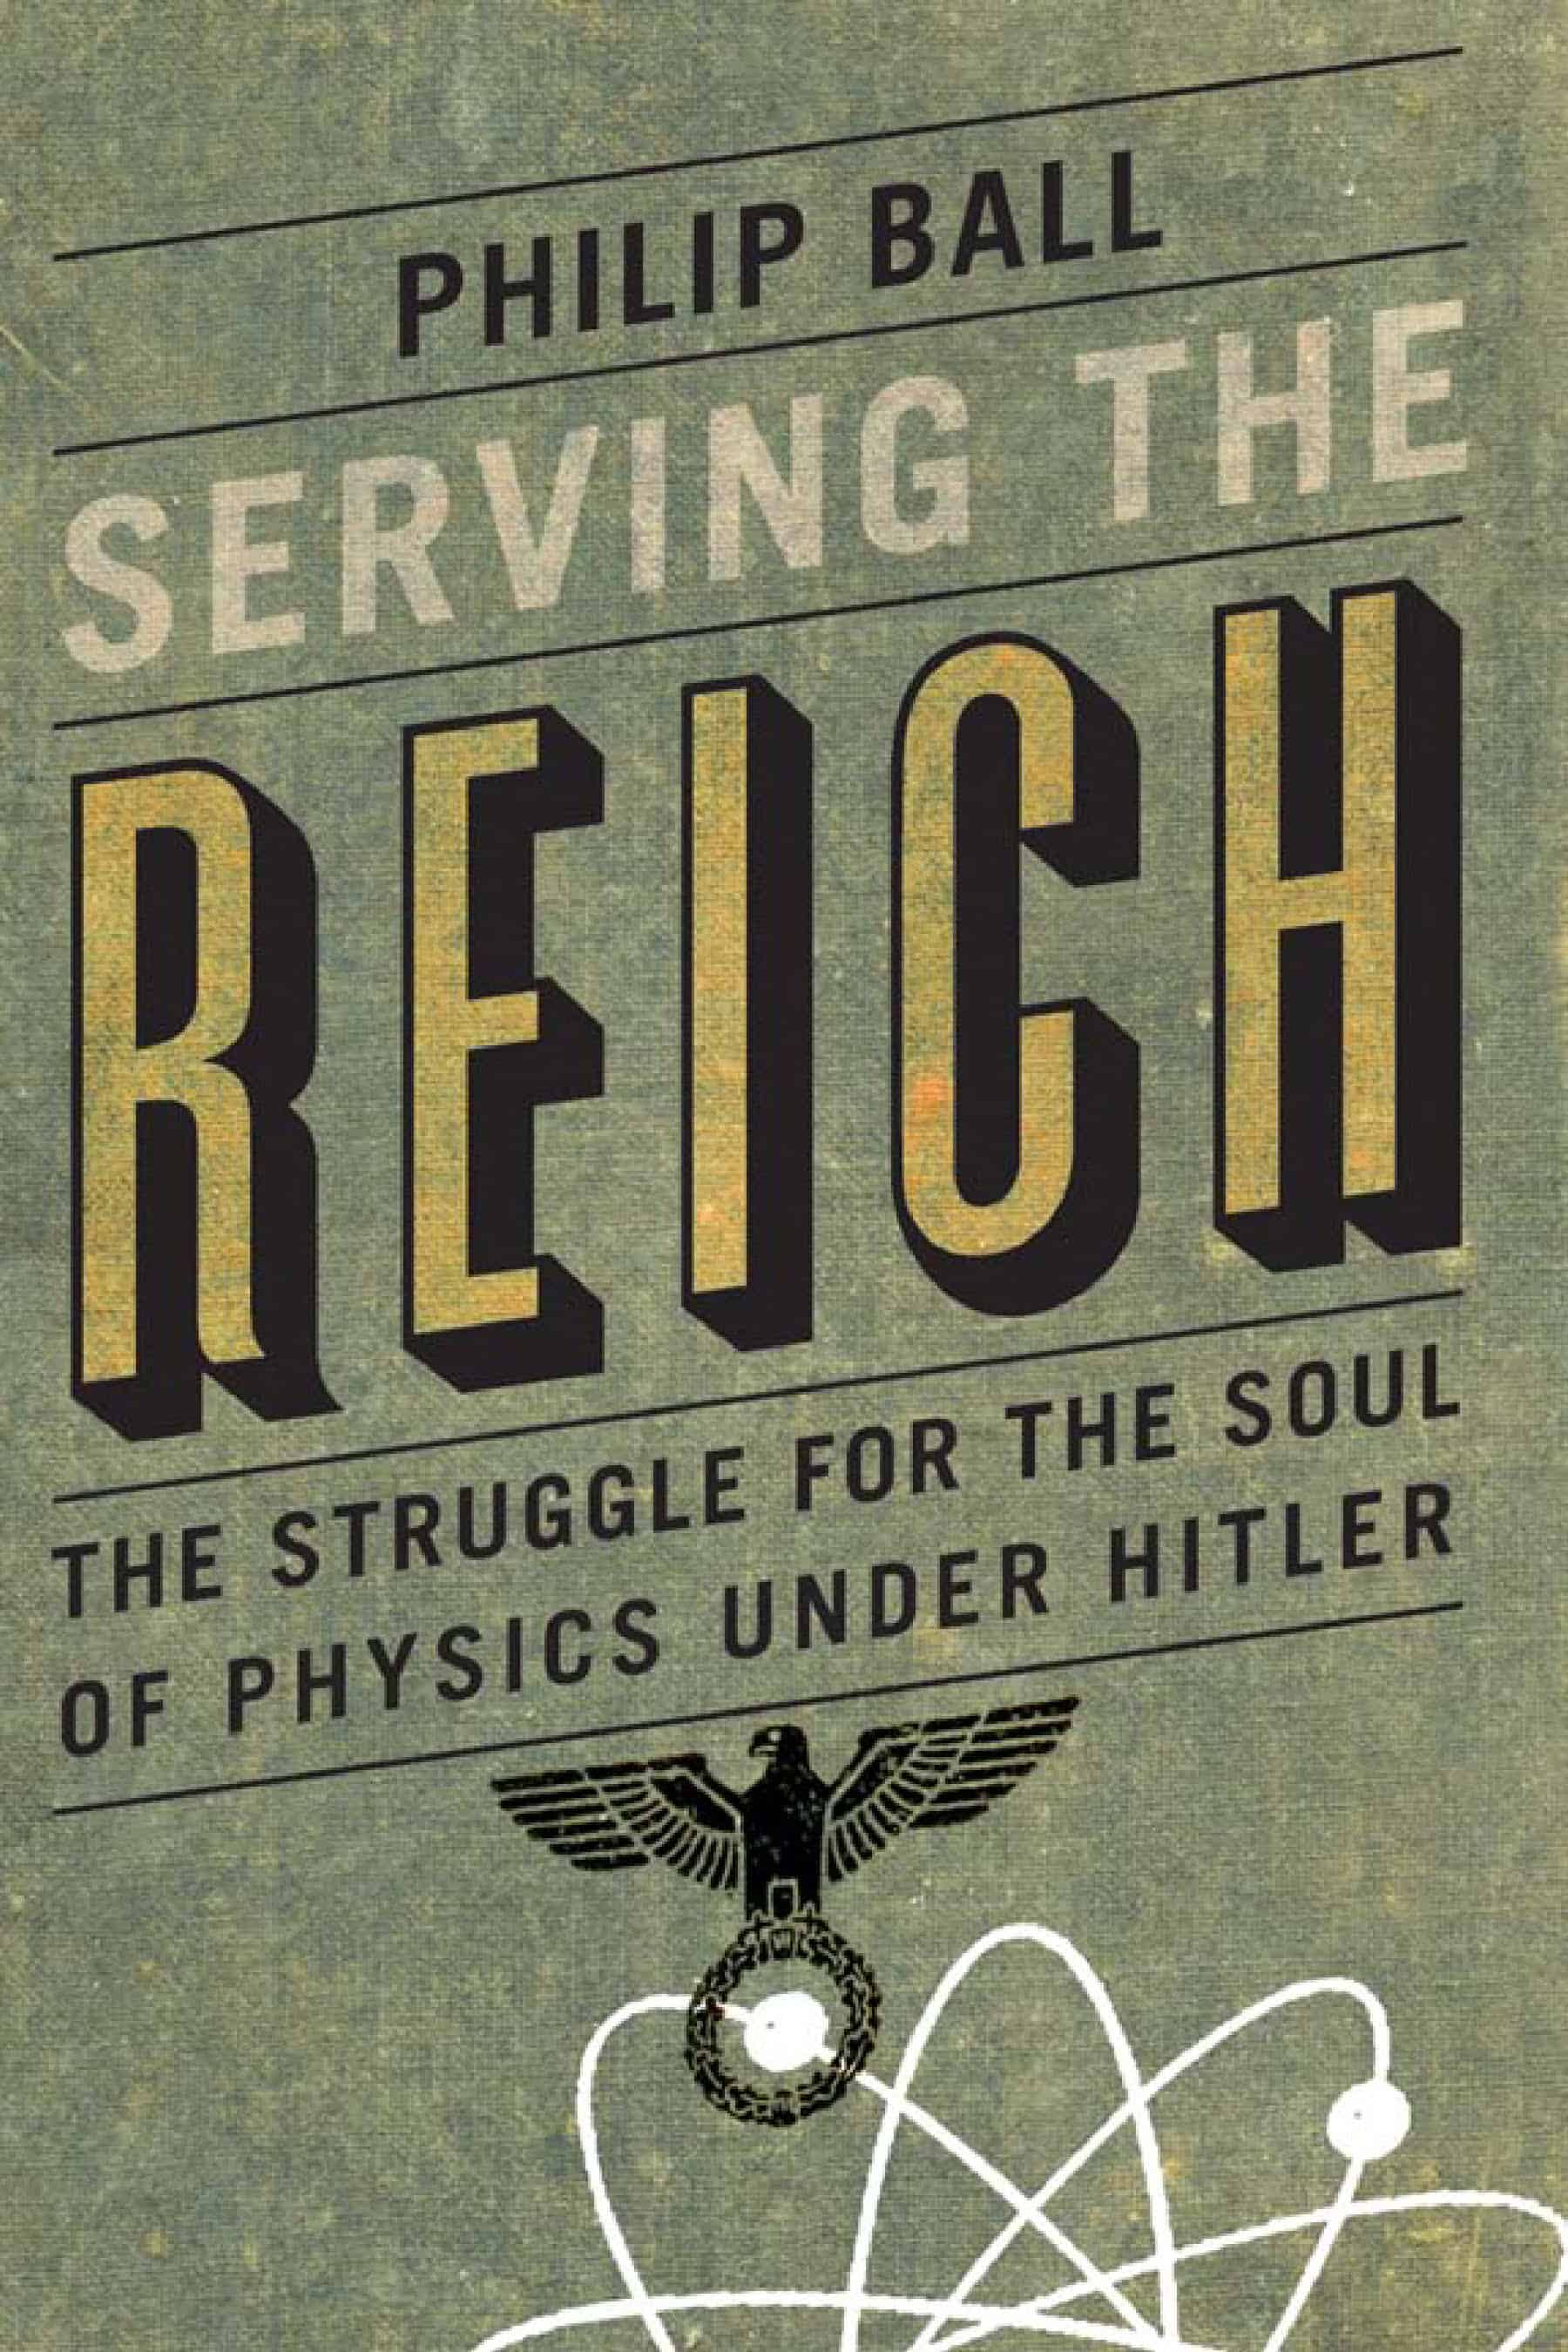 Serving the Reich The Struggle for the Soul of Physics Under Hitler 1 - Serving the Reich: The Struggle for the Soul of Physics Under Hitler